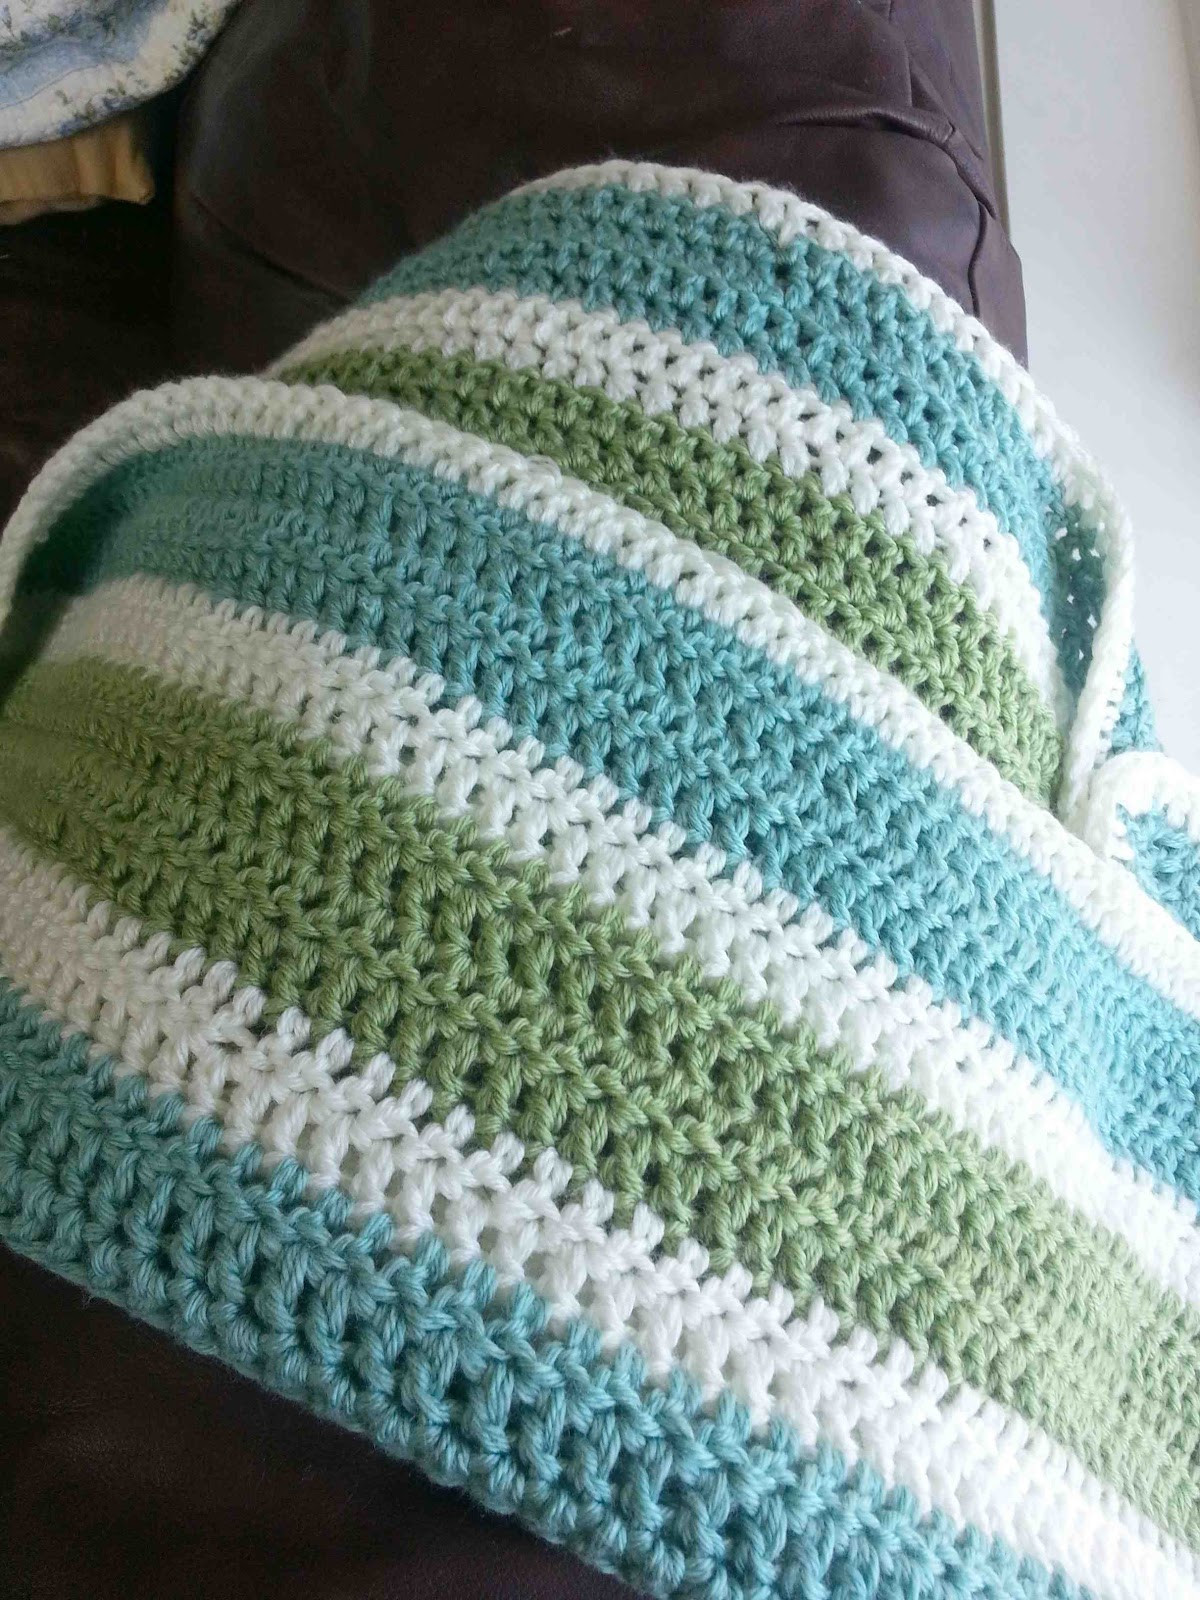 Afghan Blanket Crochet Elegant Made by Me D with You Striped Crochet Afghan Of Marvelous 48 Ideas Afghan Blanket Crochet